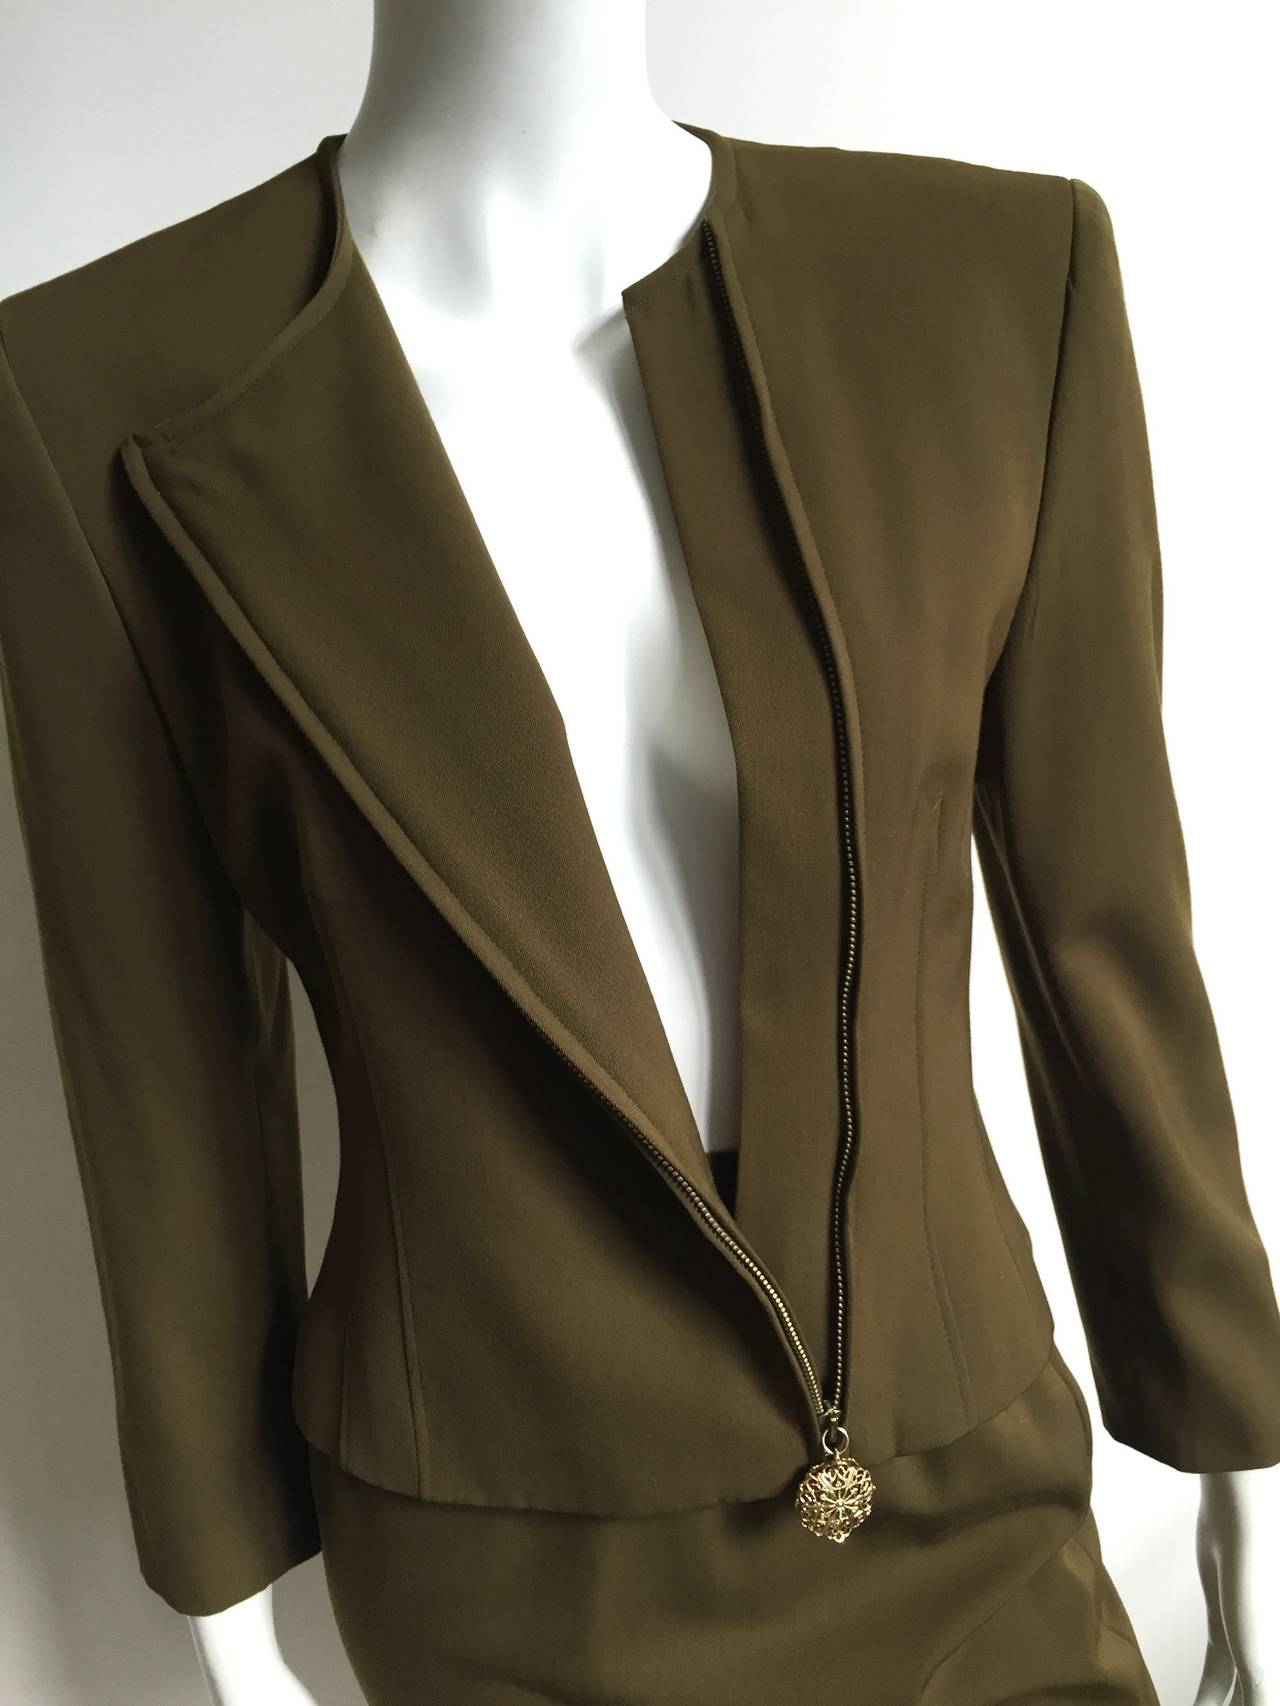 Genny by Versace Olive Skirt Suit Size 4  5